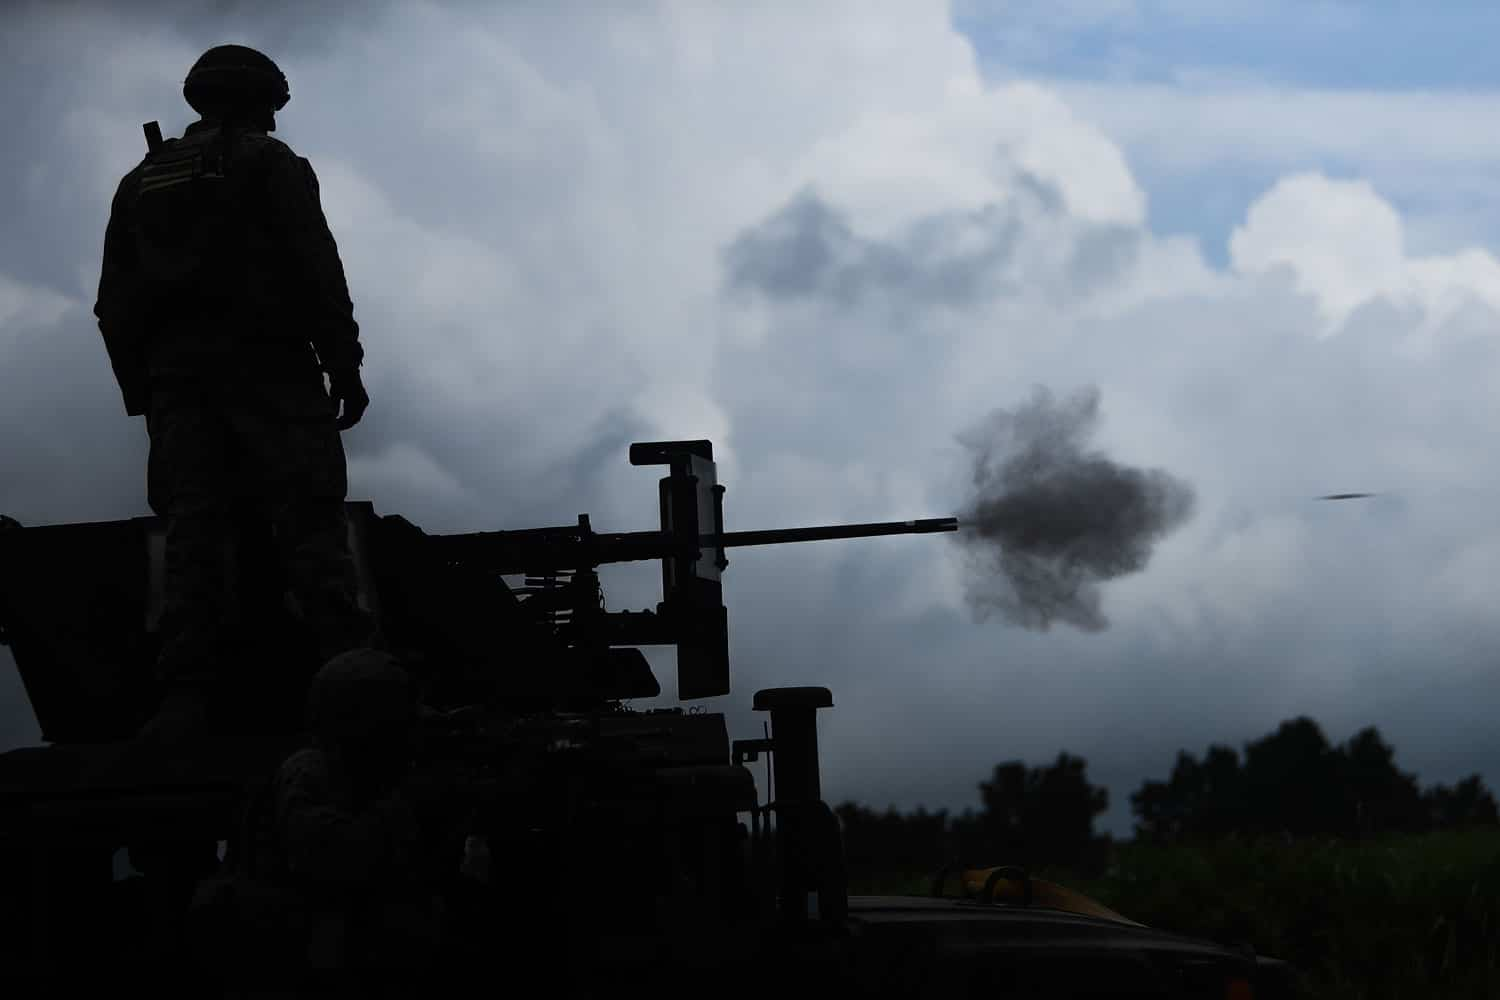 Cpl. William D. Alexander, a Severn, Maryland native and anti-tank missile-man with Combined Anti-Armor Team 2, Weapons Company, 1st Battalion, 3rd Marine Regiment, observes a mounted M2 .50 caliber machine gun fire down range during Exercise Fuji Viper.